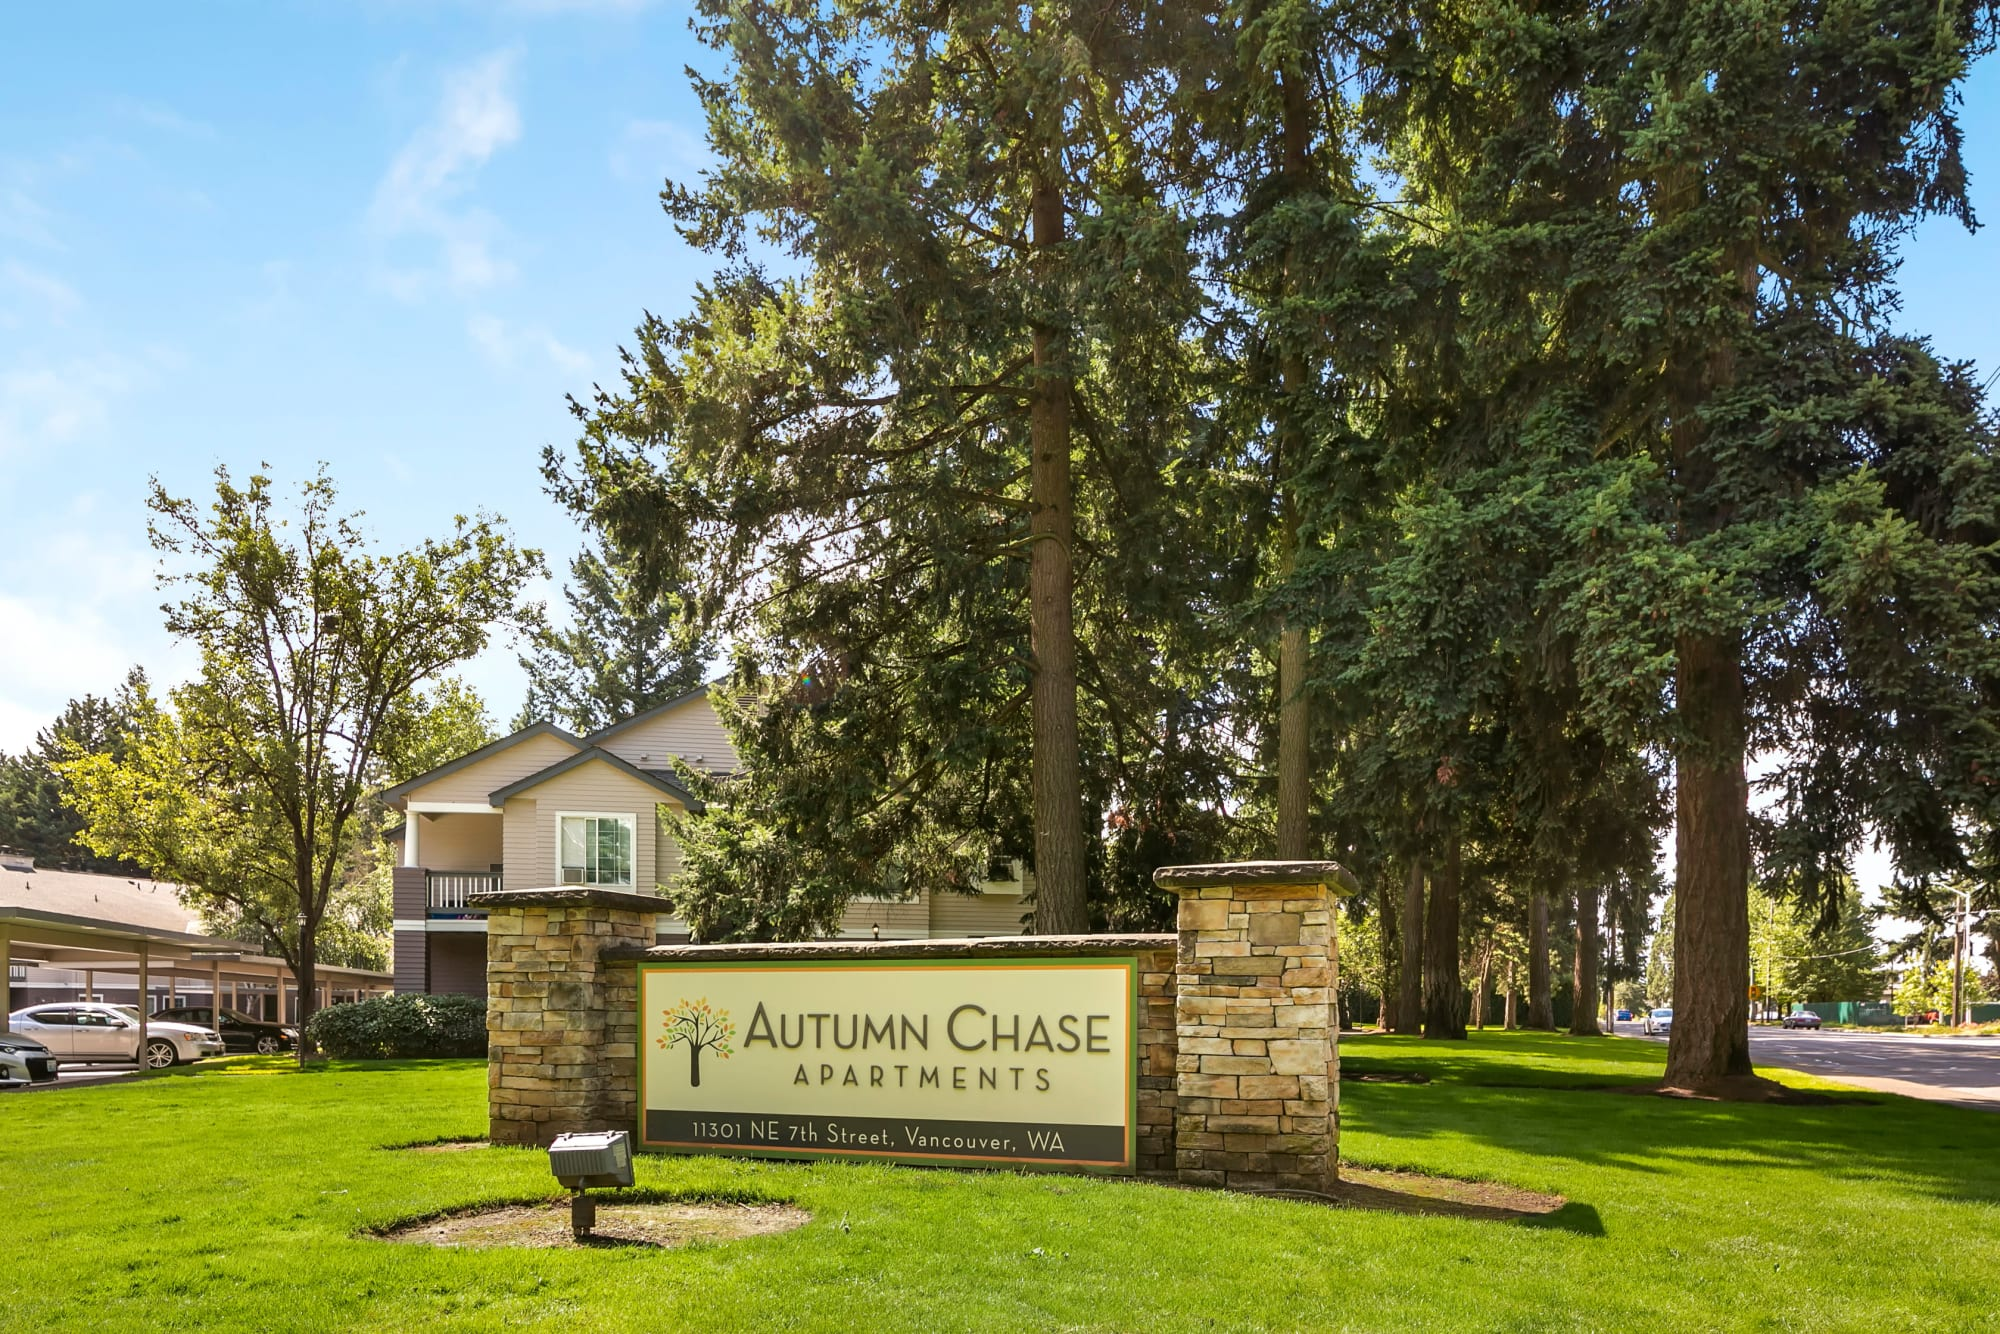 monument sign At Autumn Chase Apartments